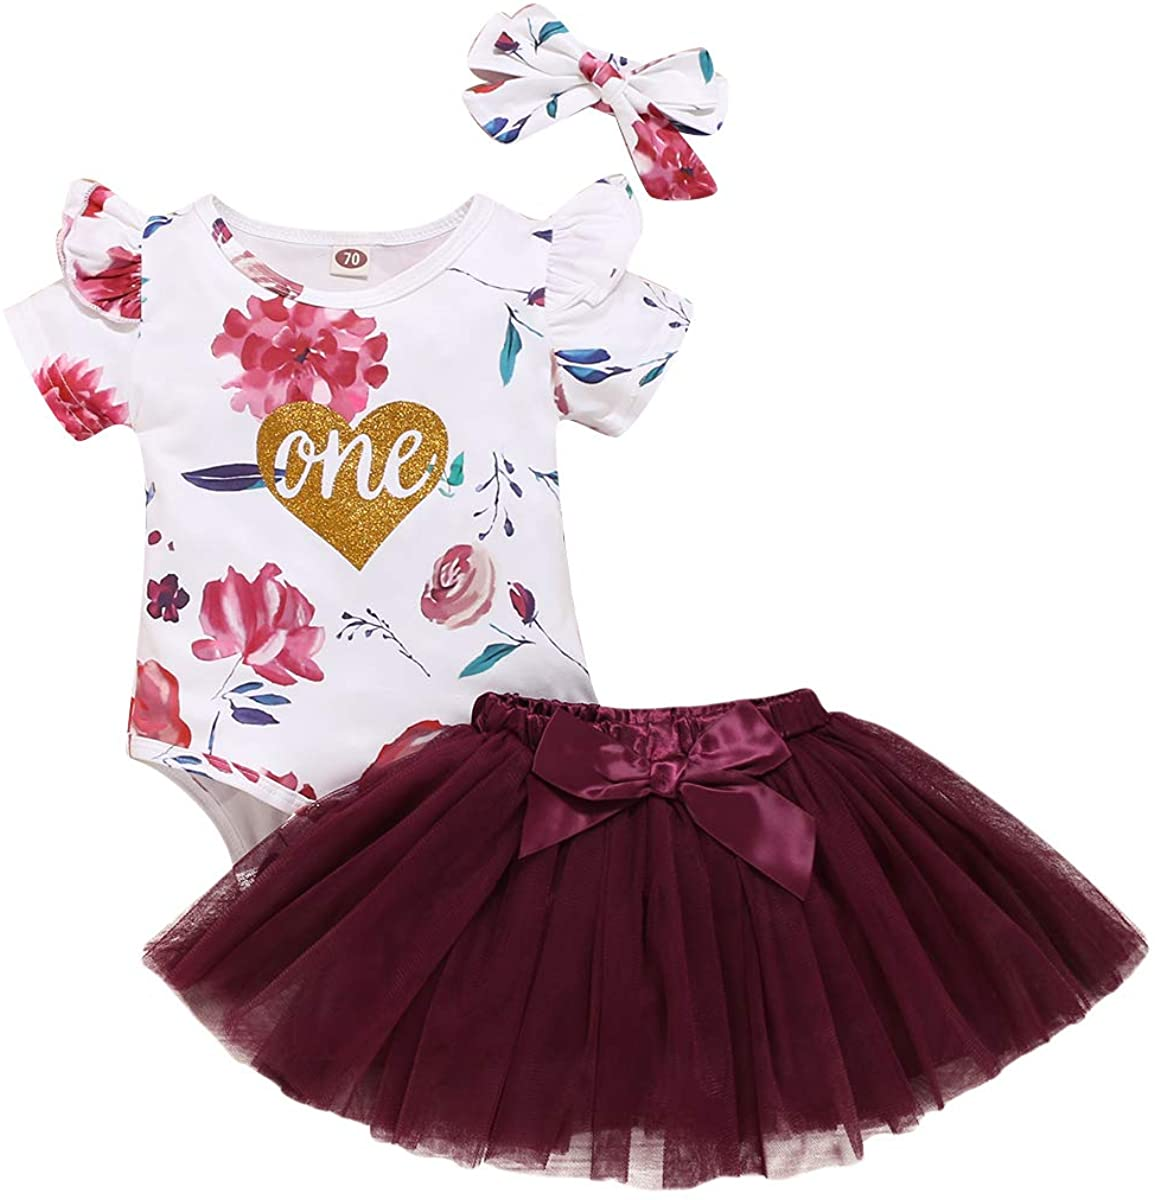 Newborn Infant Baby Girls Summer Clothes Flysleeves Birthday Romper Tutu Skirt One Year Old Outfits